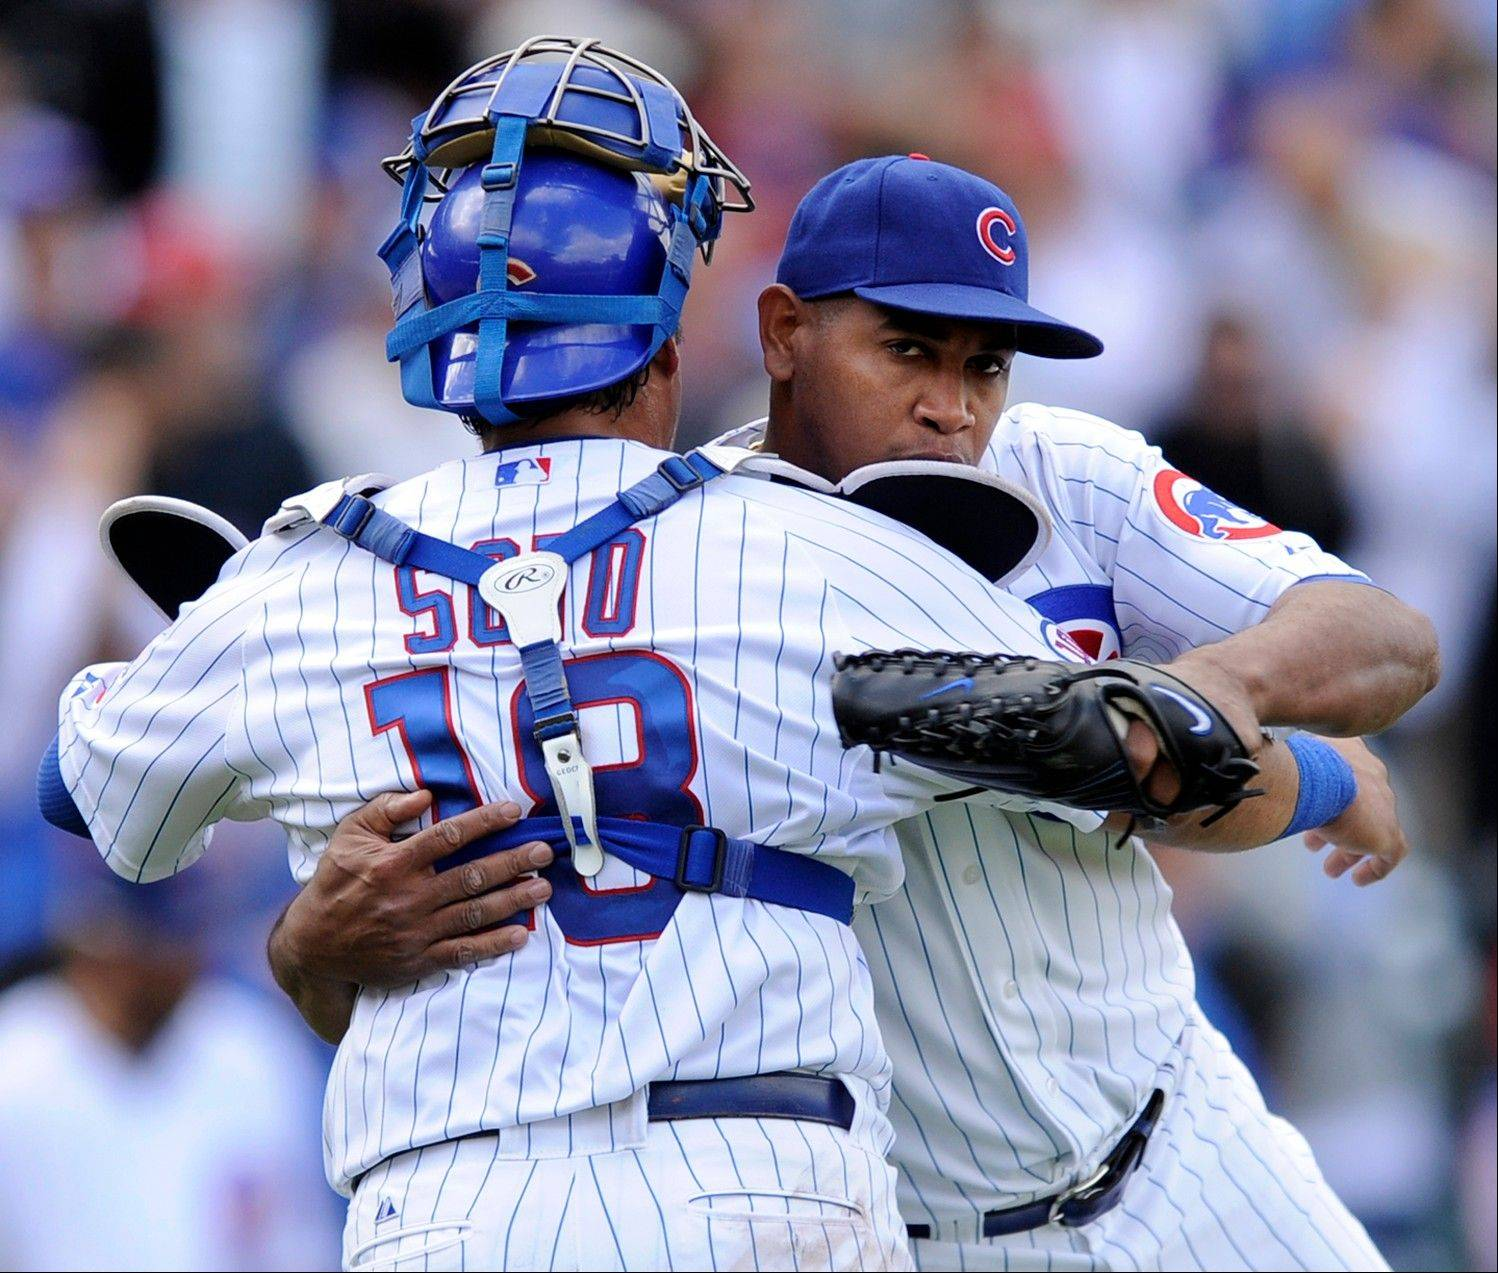 Cubs closer Carlos Marmol celebrates with catcher Geovany Soto after earning the save in Monday's victory over the Reds at Wrigley Field.